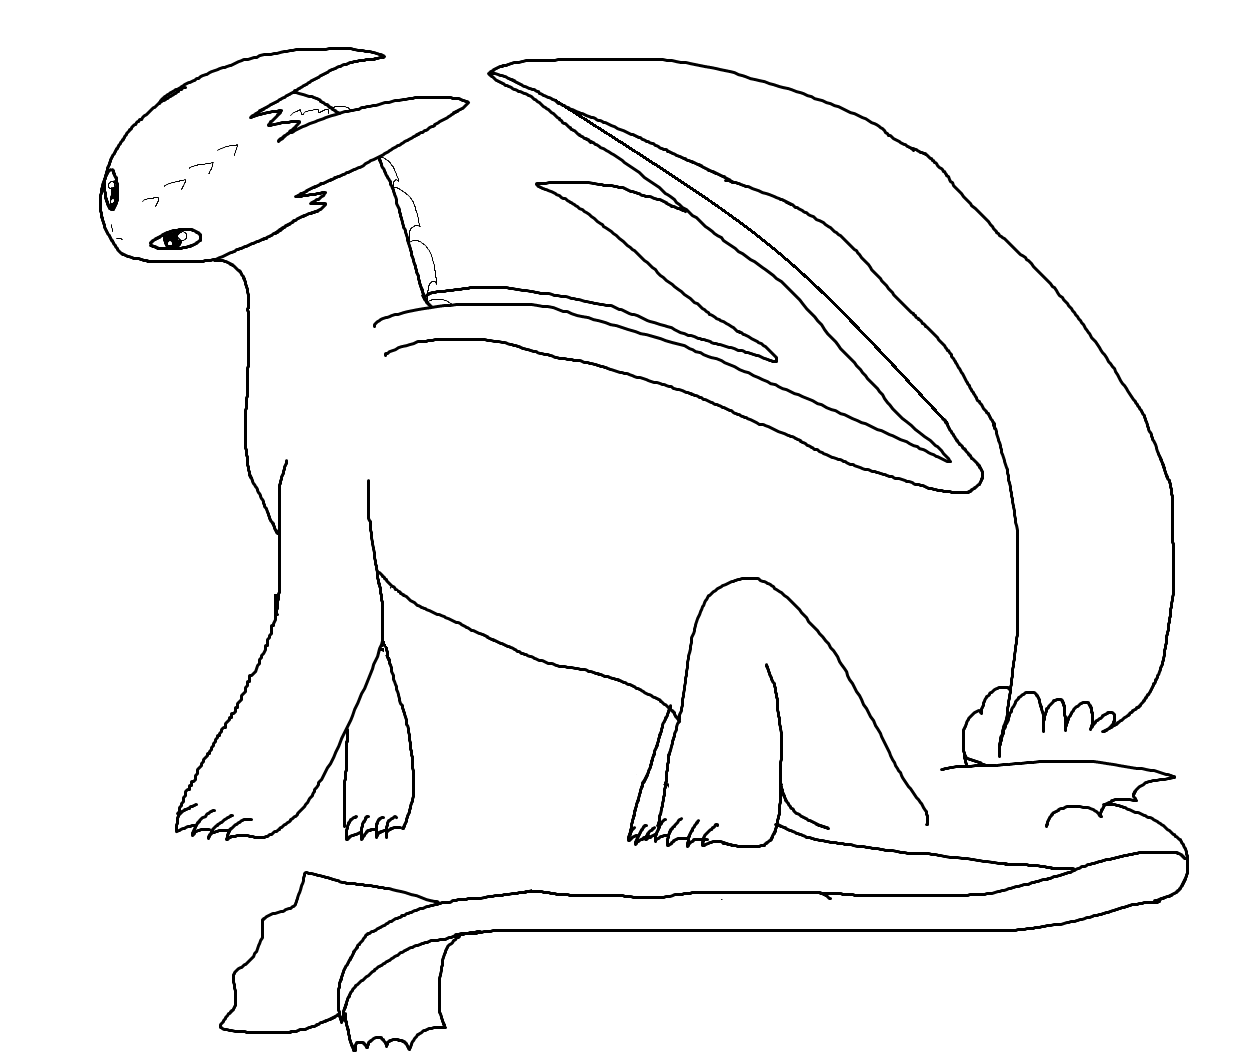 night fury colouring pages the best place for coloring page at coloringsky part 10 colouring fury night pages